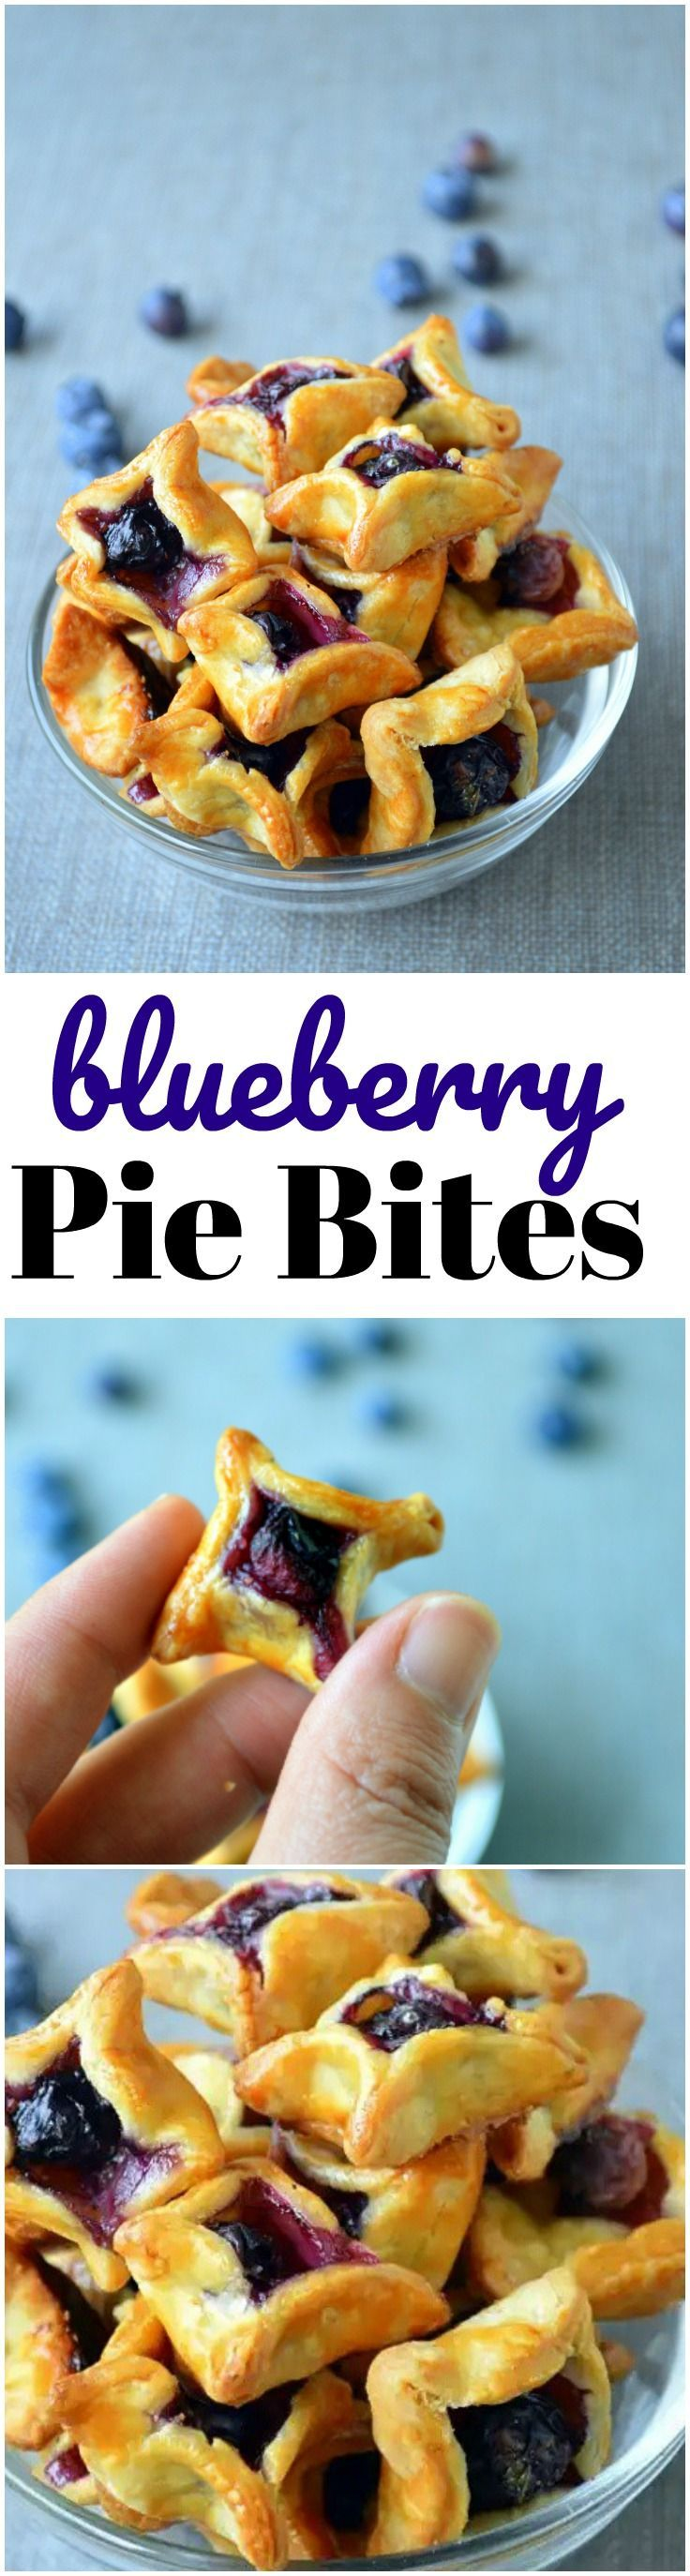 "Blueberry Pie Bites are great when you want ""just a bite""! They also make excellent ice cream topping!"